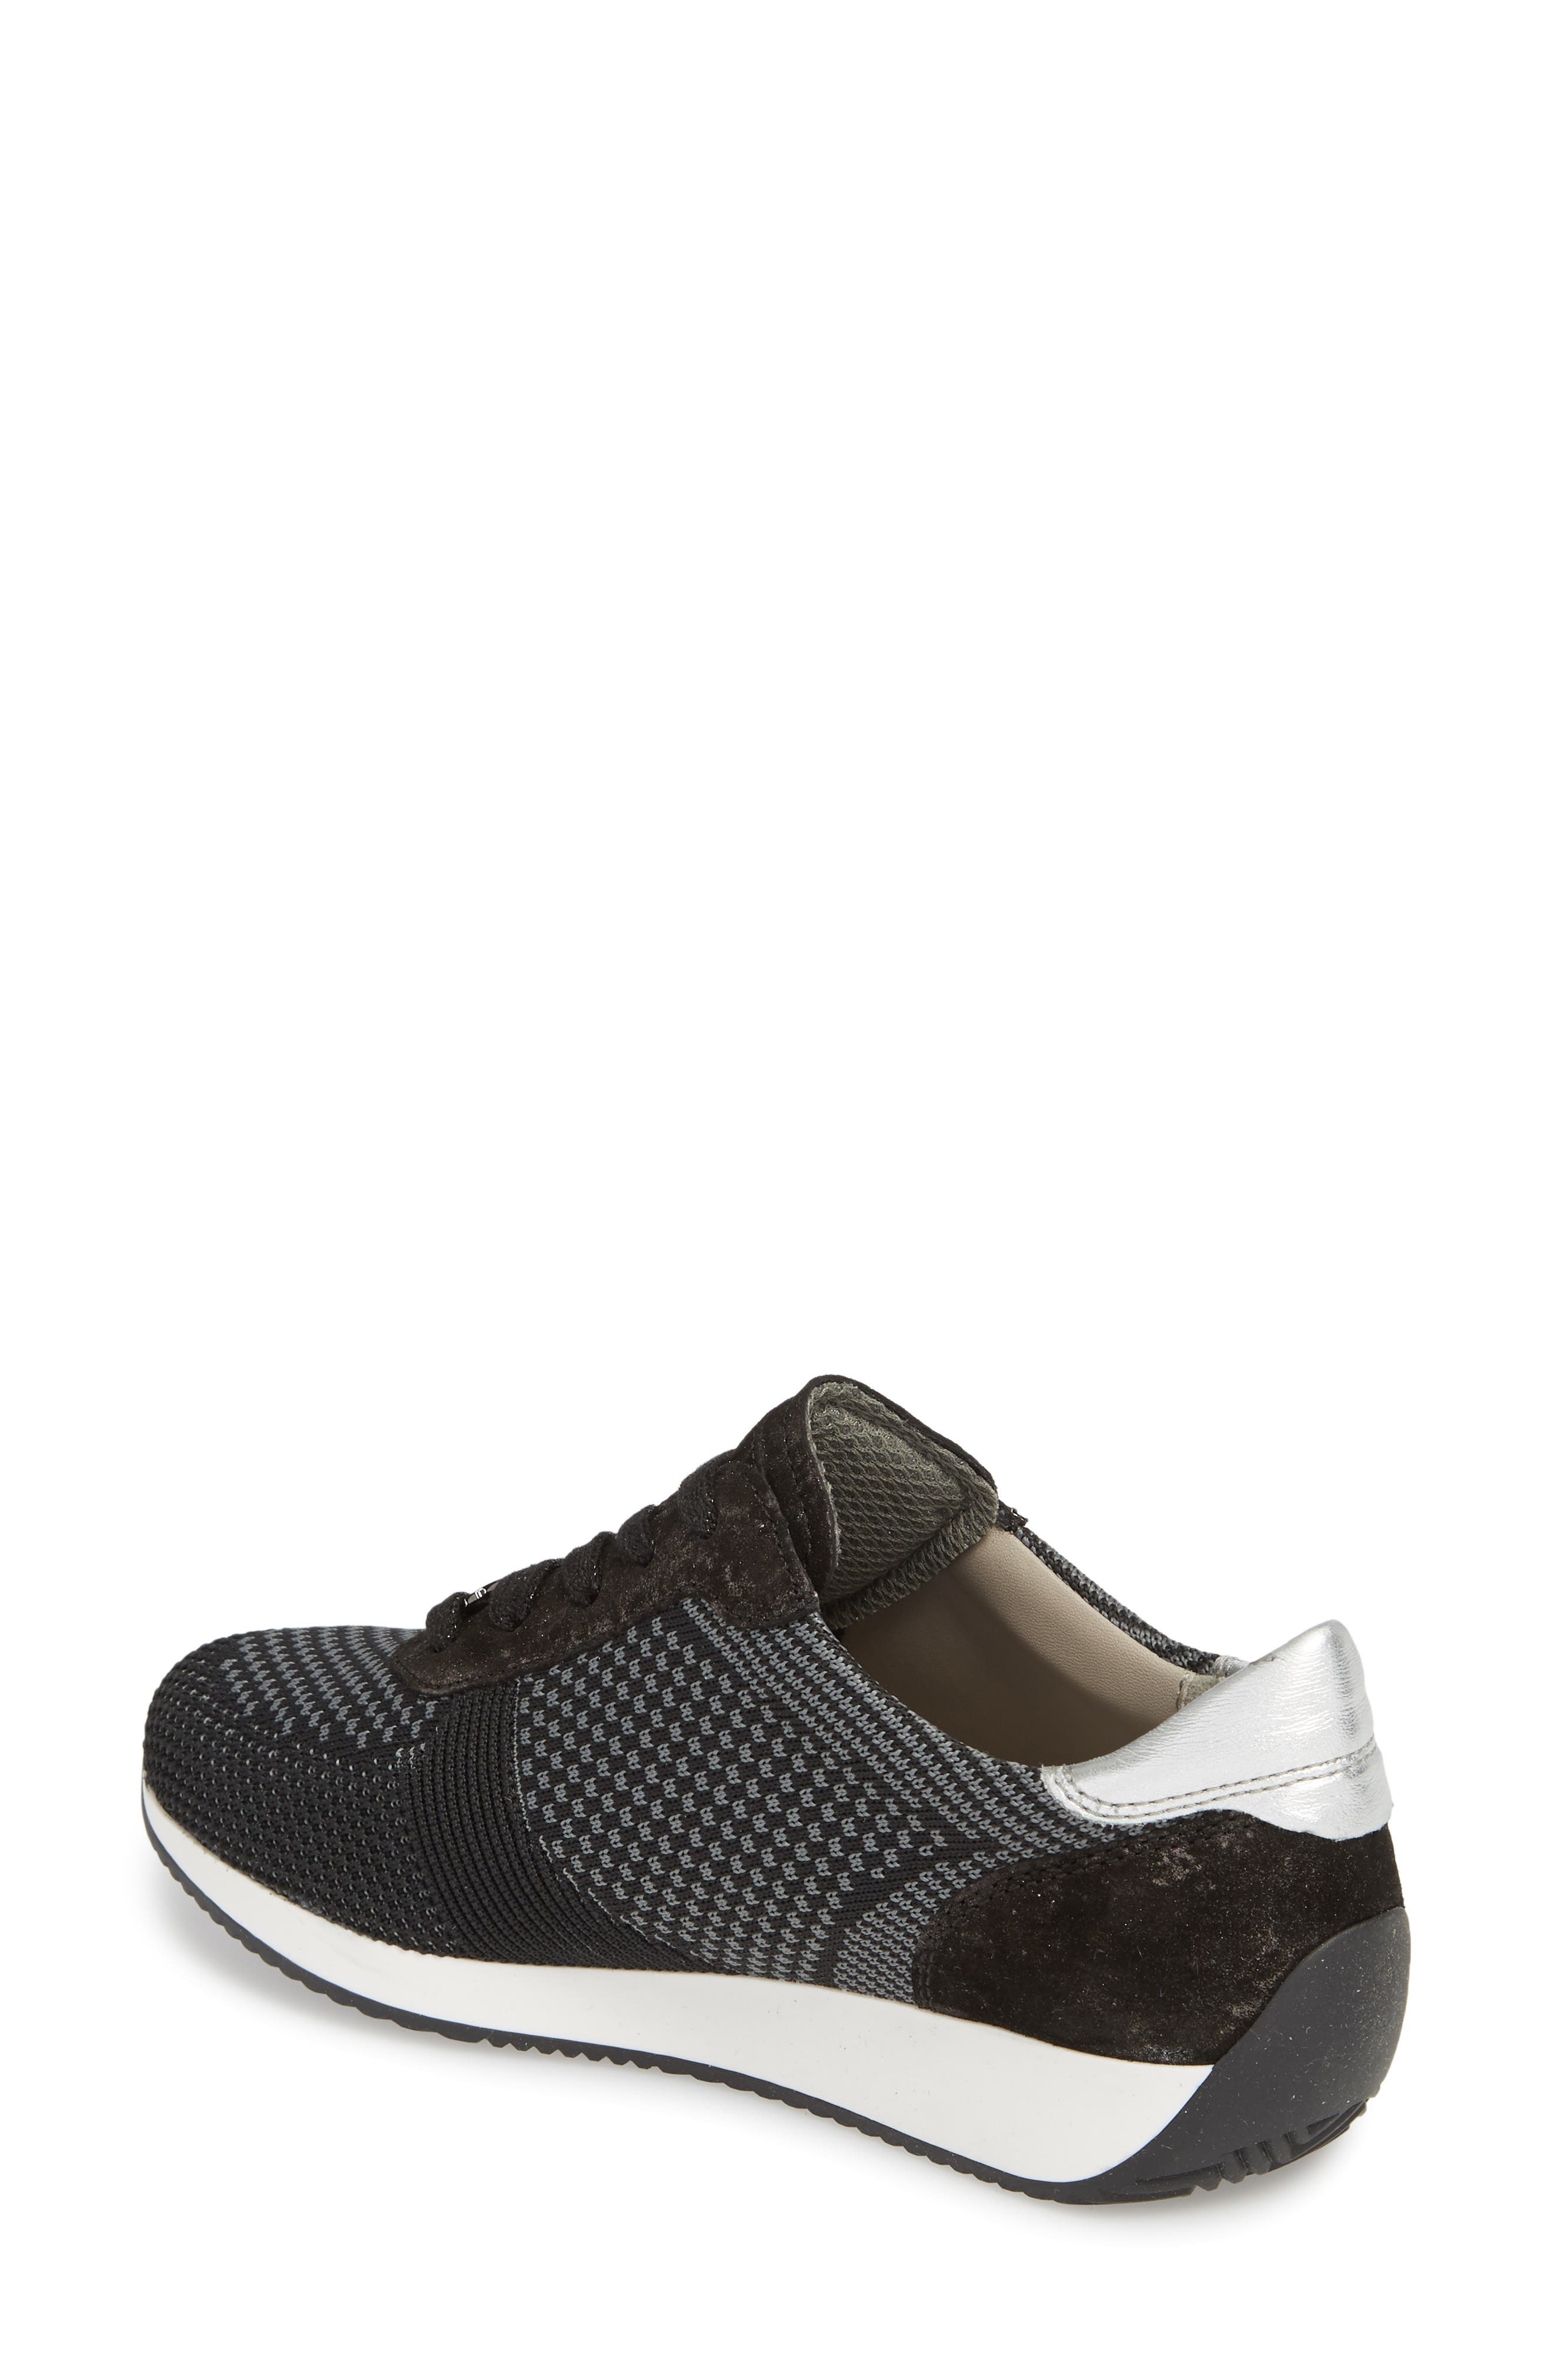 Lilly Sneaker,                             Alternate thumbnail 2, color,                             BLACK FABRIC